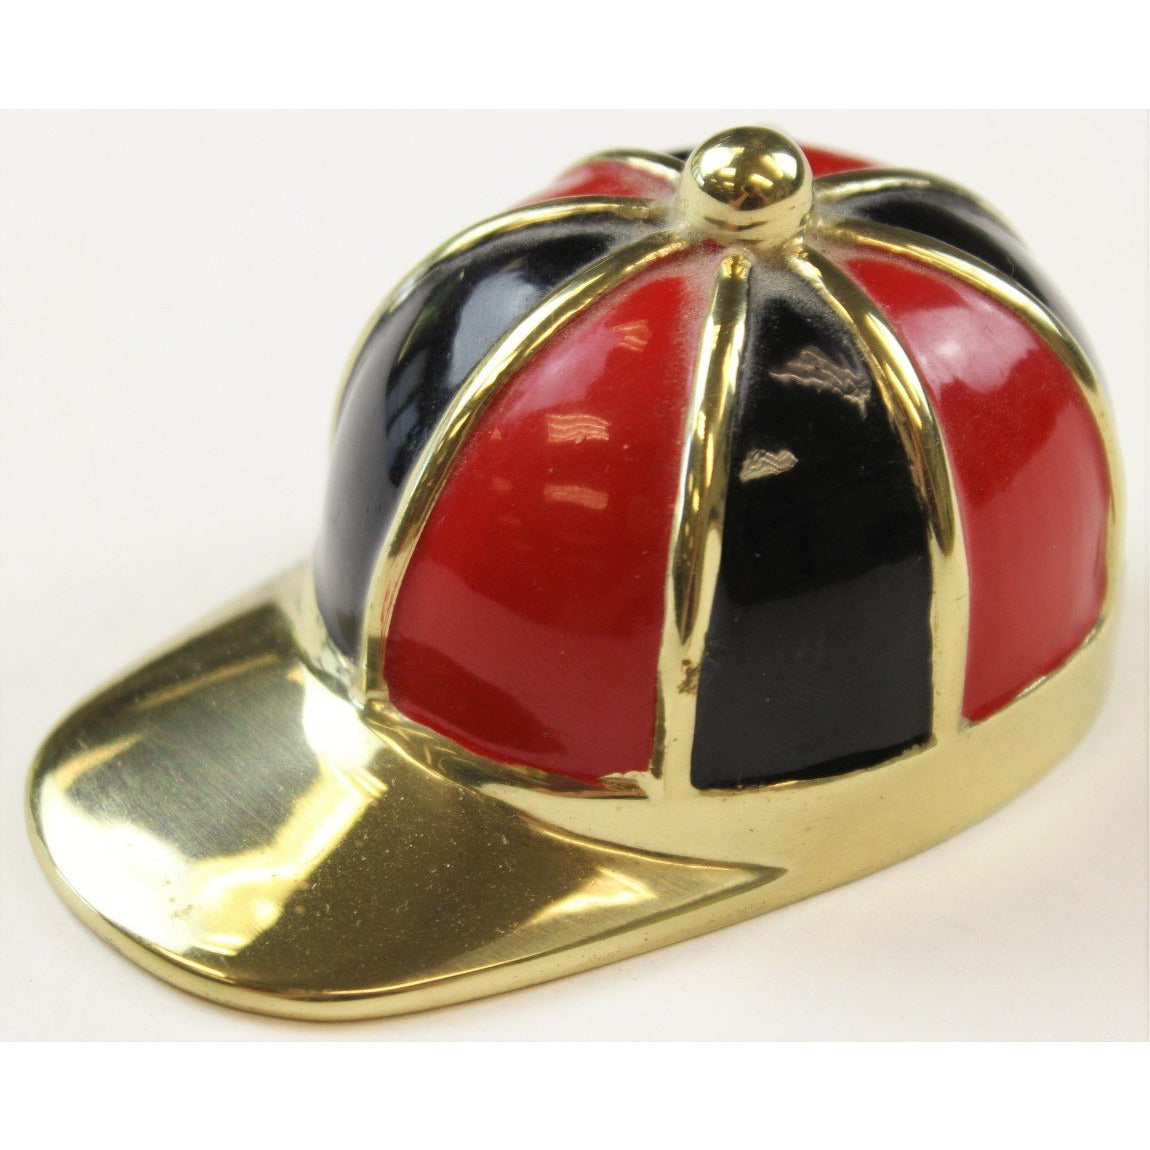 Red/Black Enamel & Brass Jockey Cap Bottle Opener